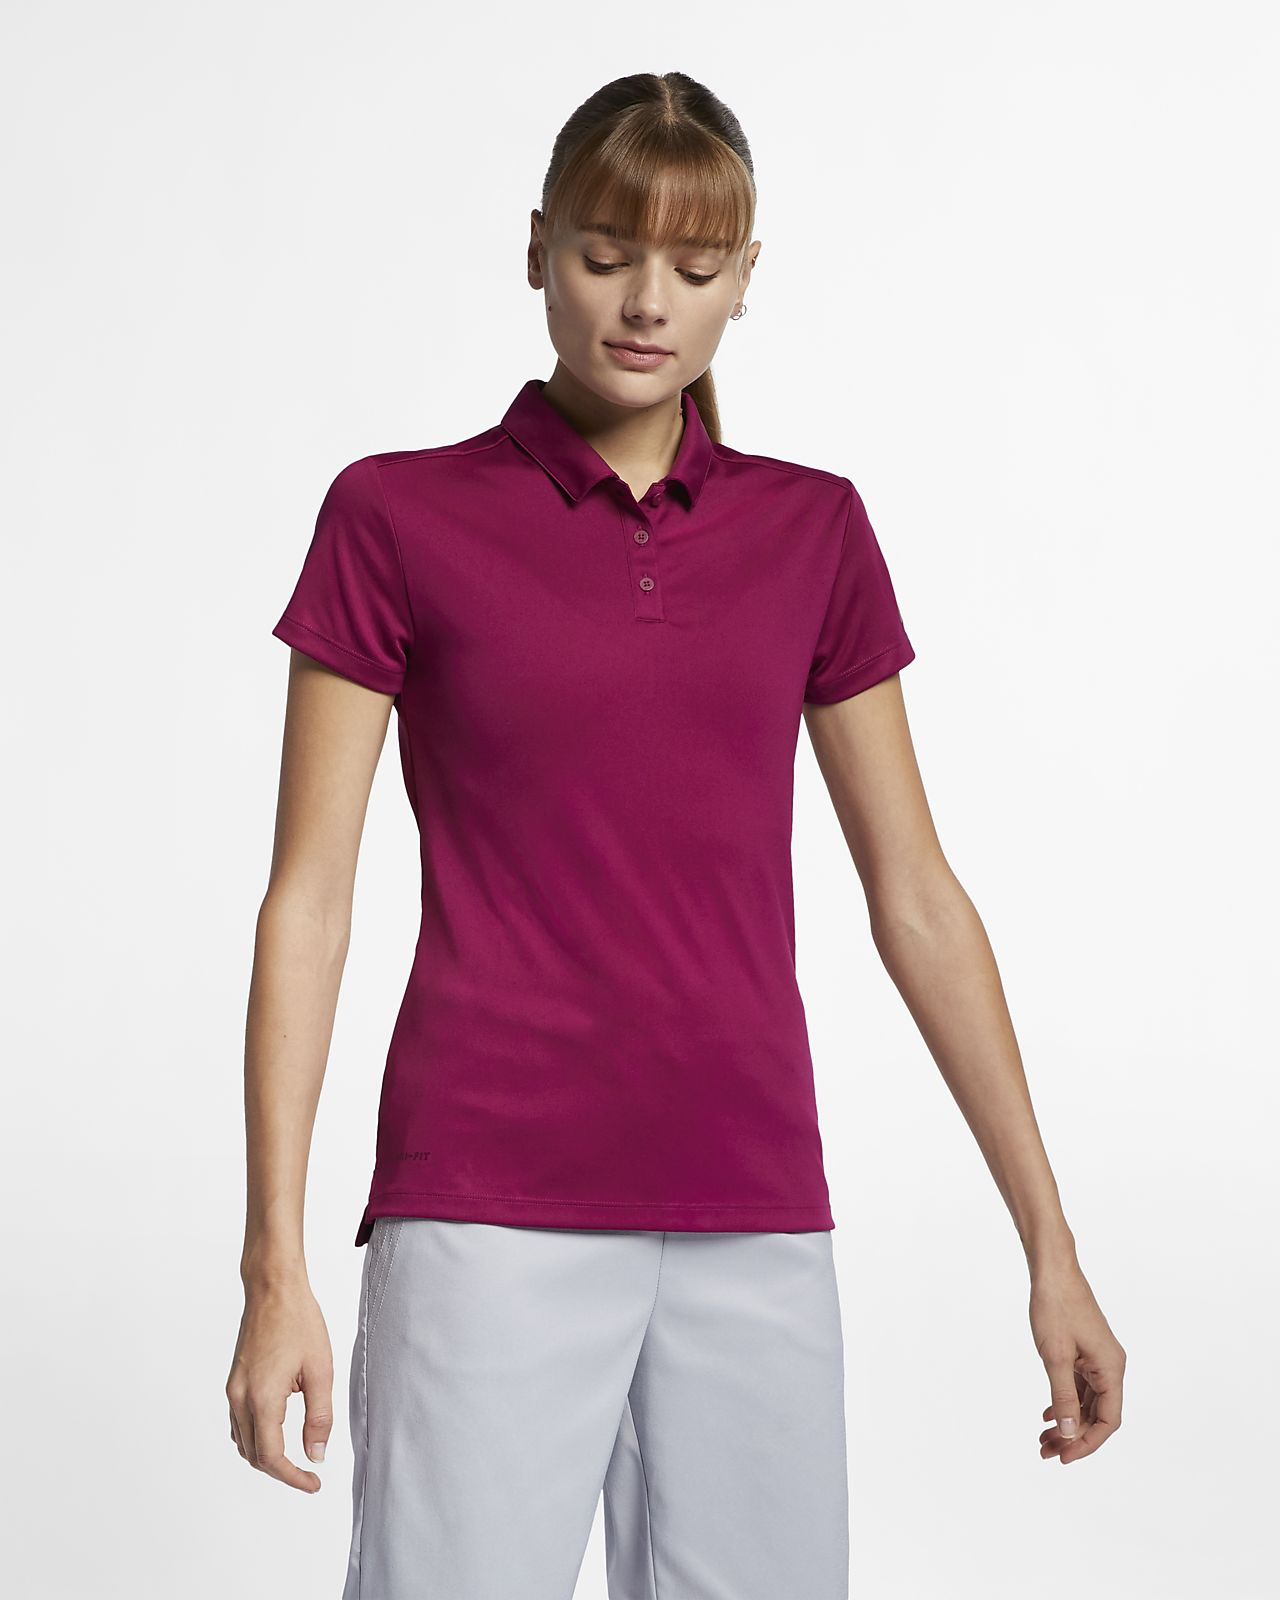 Nike Dri Fit Womens Golf Polo Nike